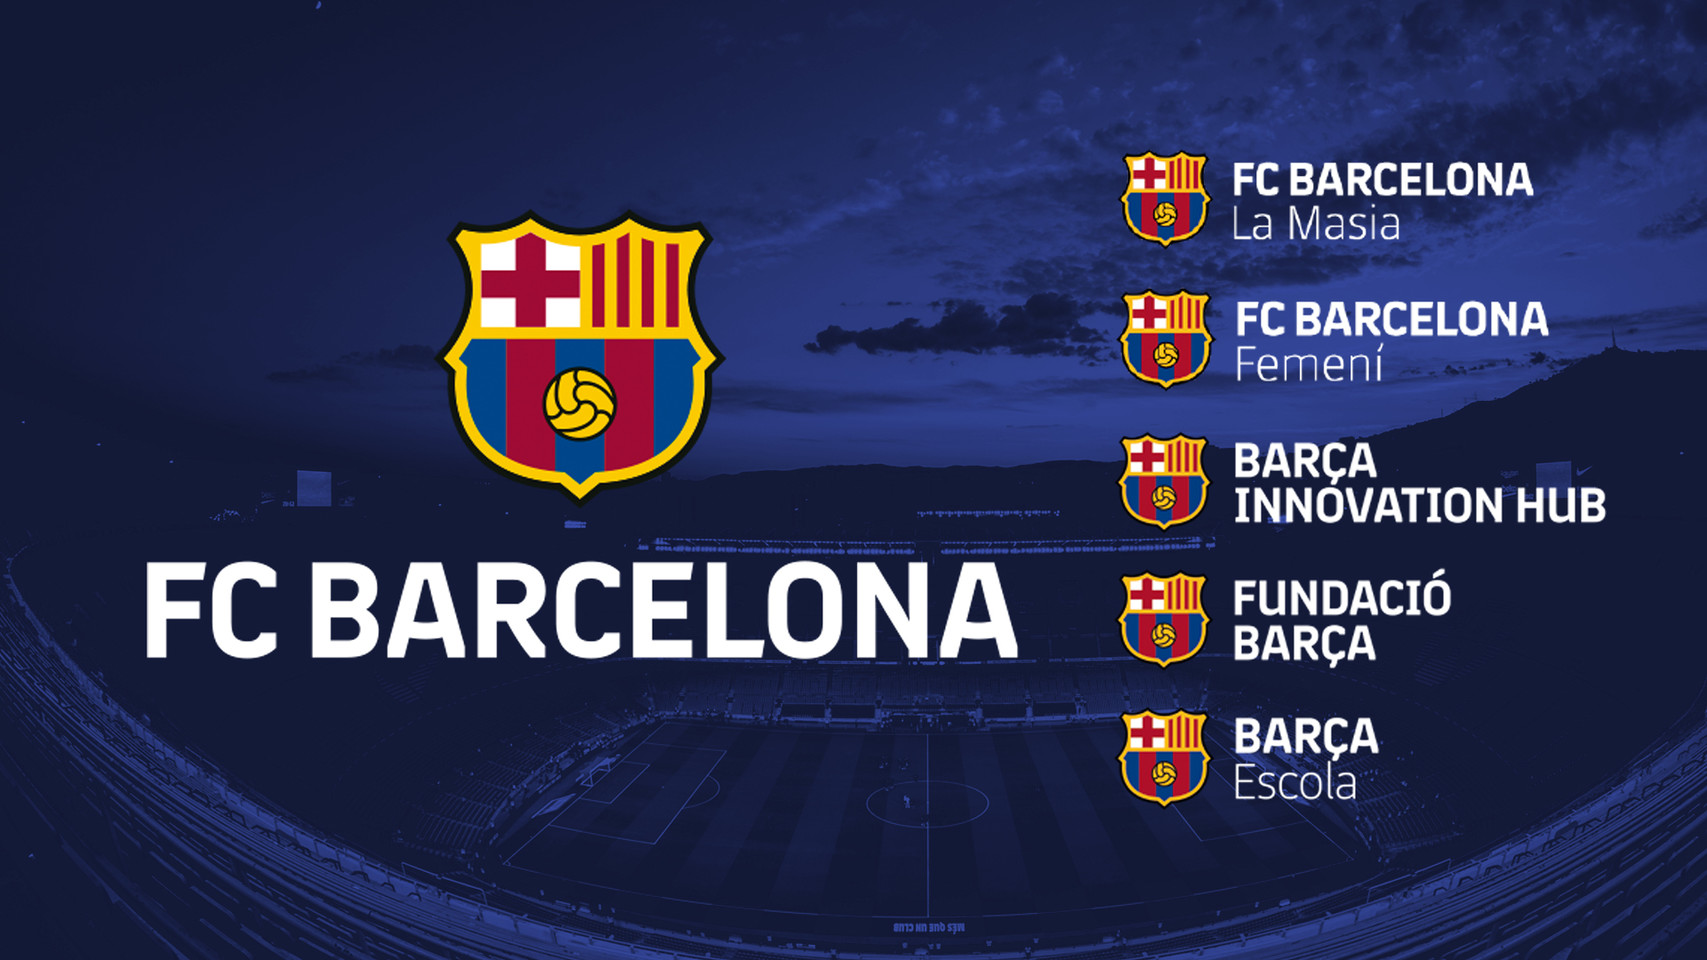 A Crest For New Times Fc Barcelona